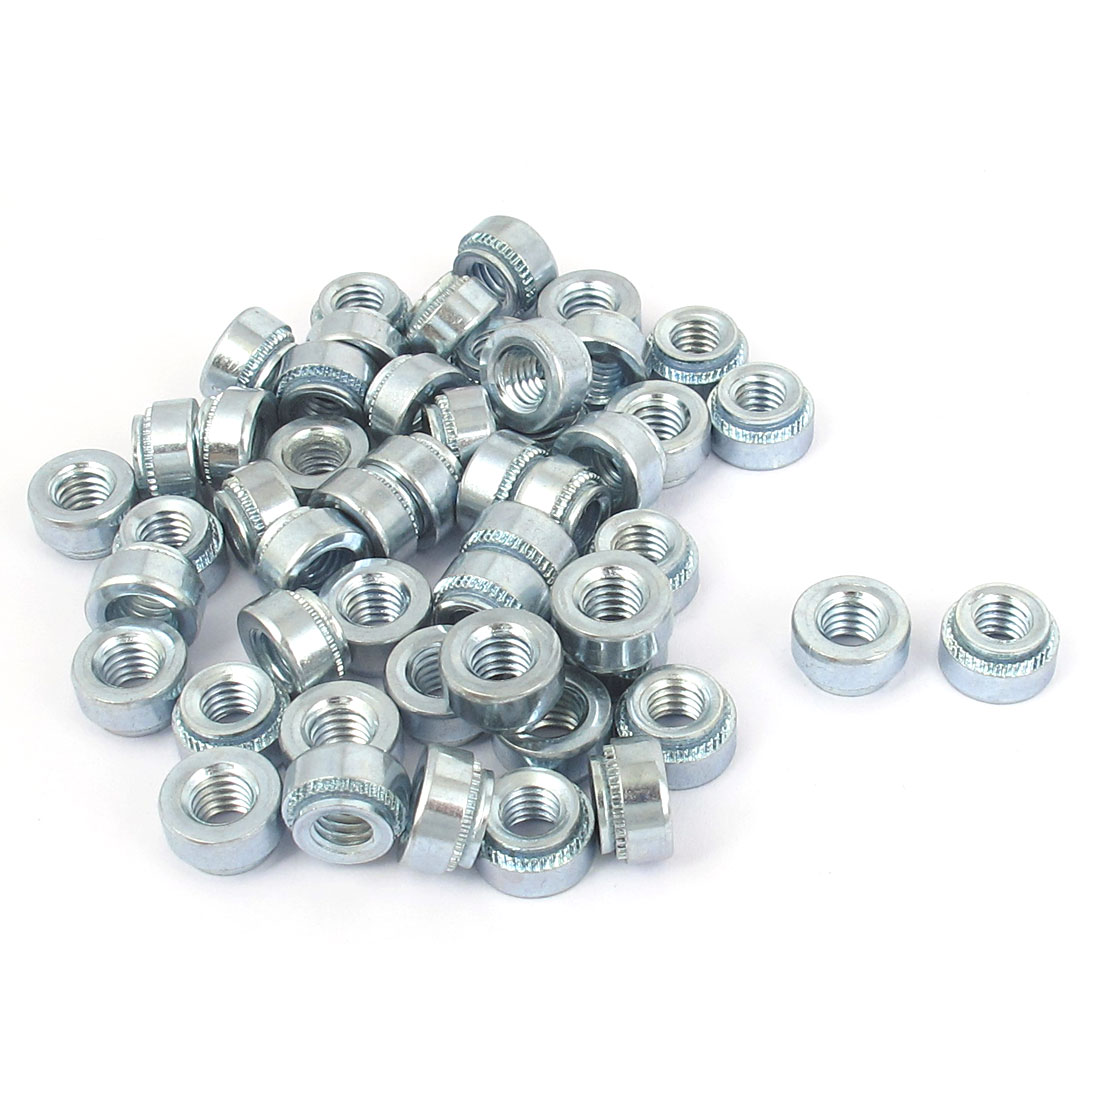 M6 Zinc Plated Self Clinching Rivet Nut Fastener 50pcs for 2mm Thin Plates